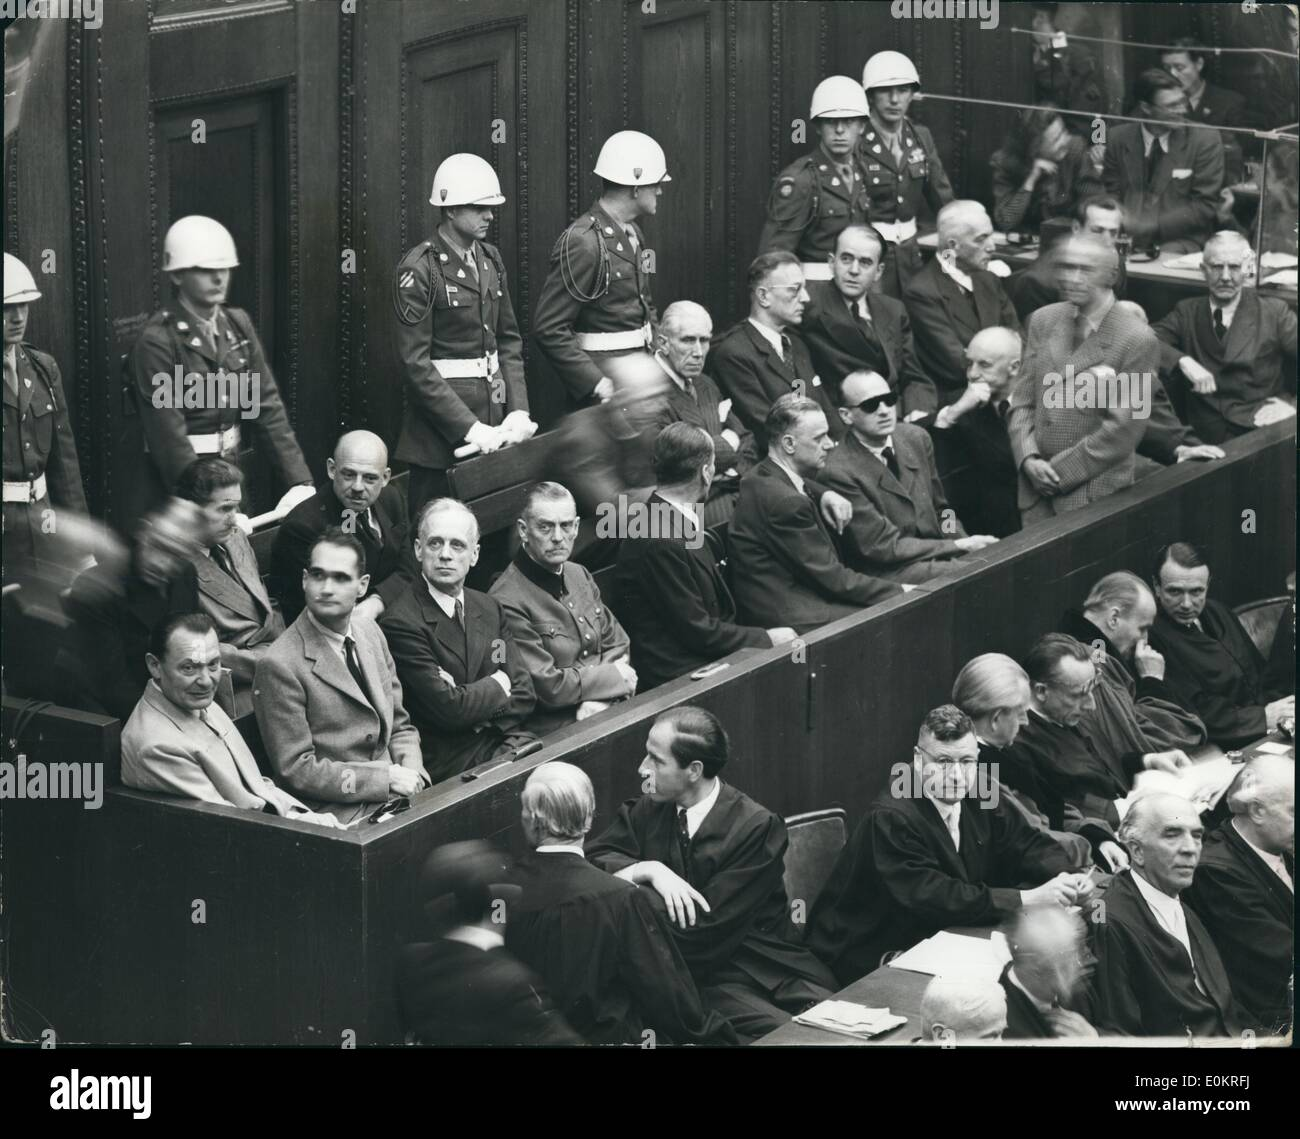 Oct. 10, 1946 - They Know Their Fate!!! Five Of The Chief Nazis In Dock During Final Stages Of Trial At Nuremberg: Stock Photo